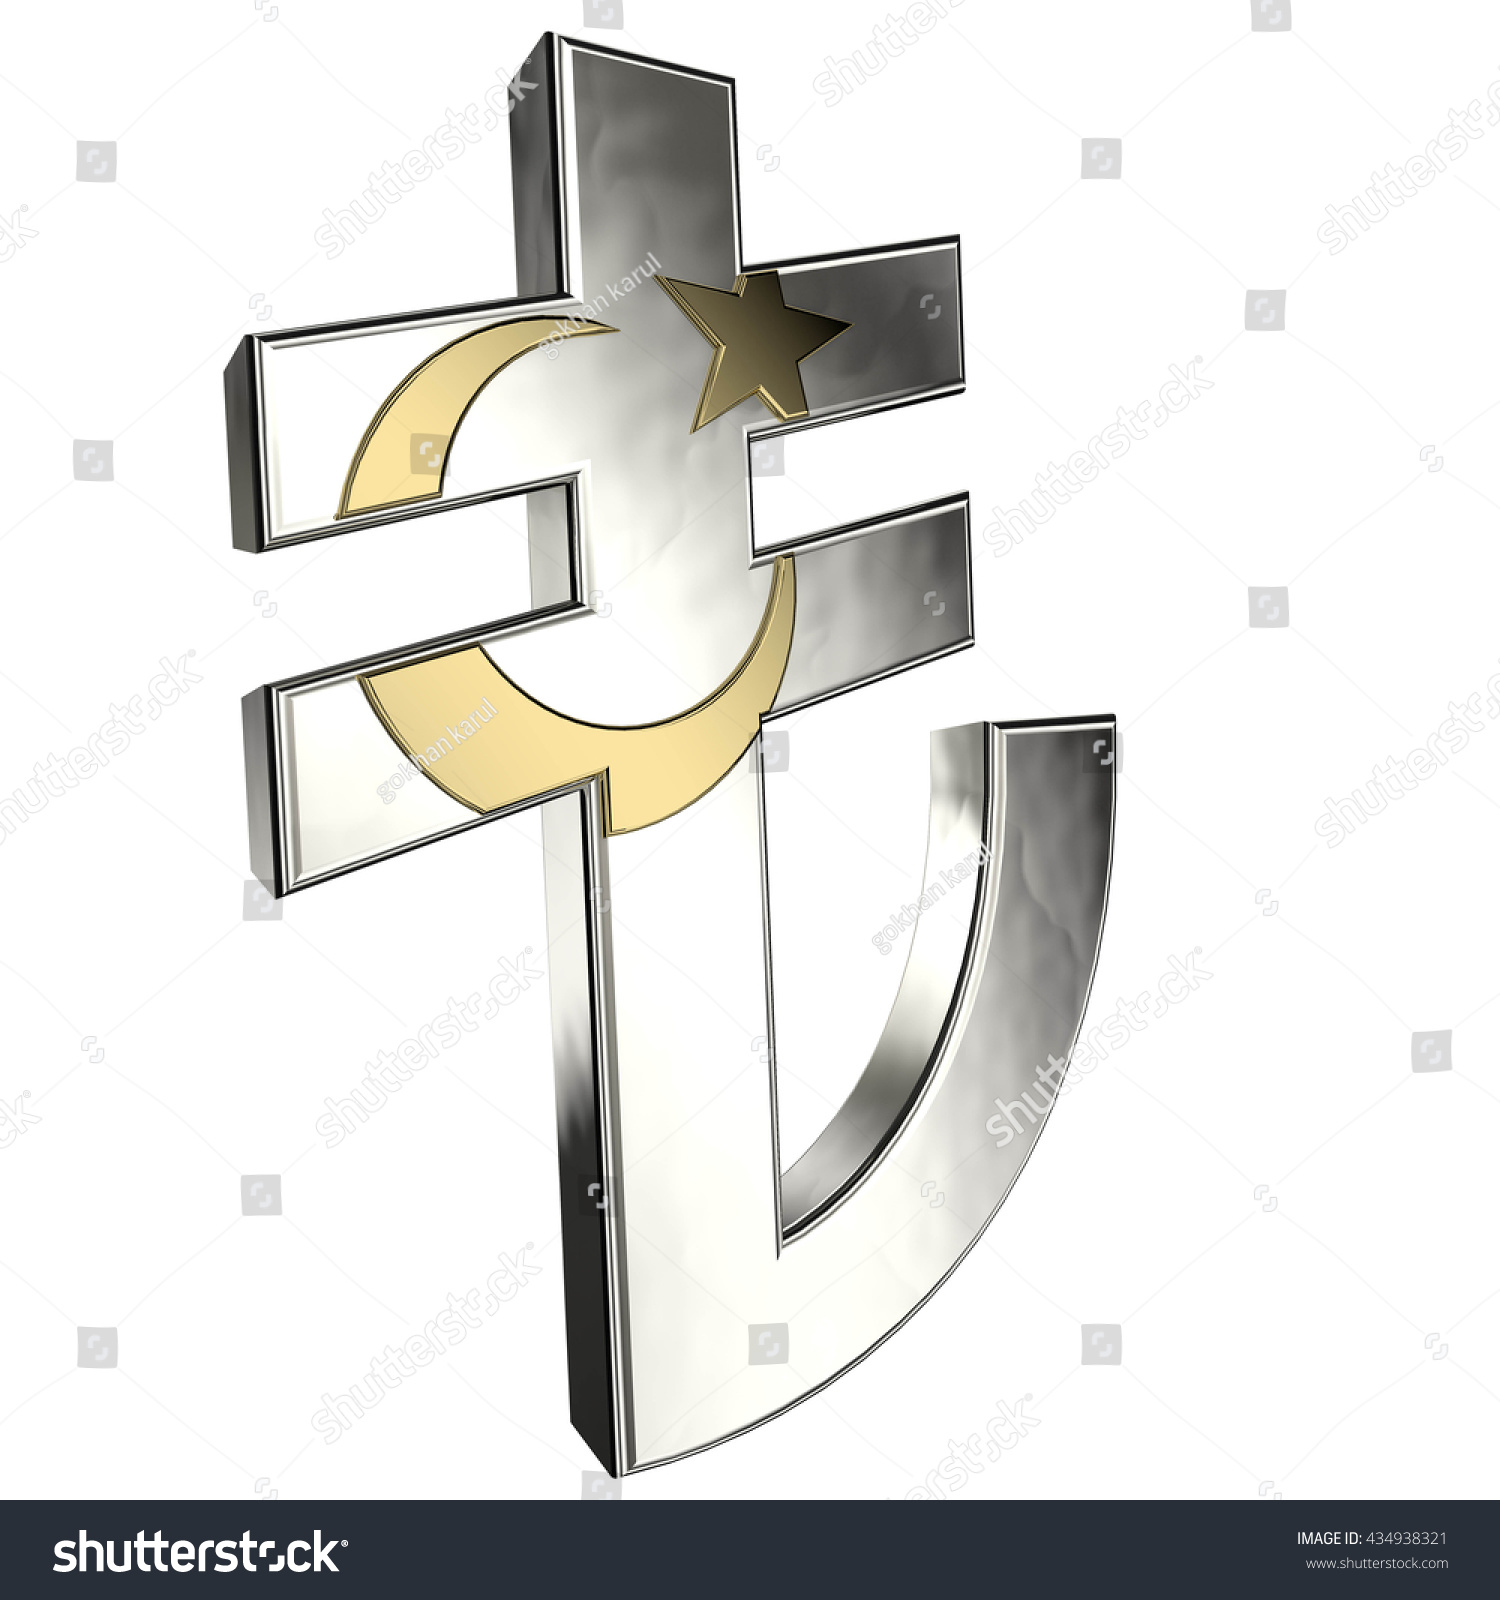 Turkey currency symbol images symbol and sign ideas what is the symbol for turkish lira choice image symbol and sign turkish lira currency symbol buycottarizona